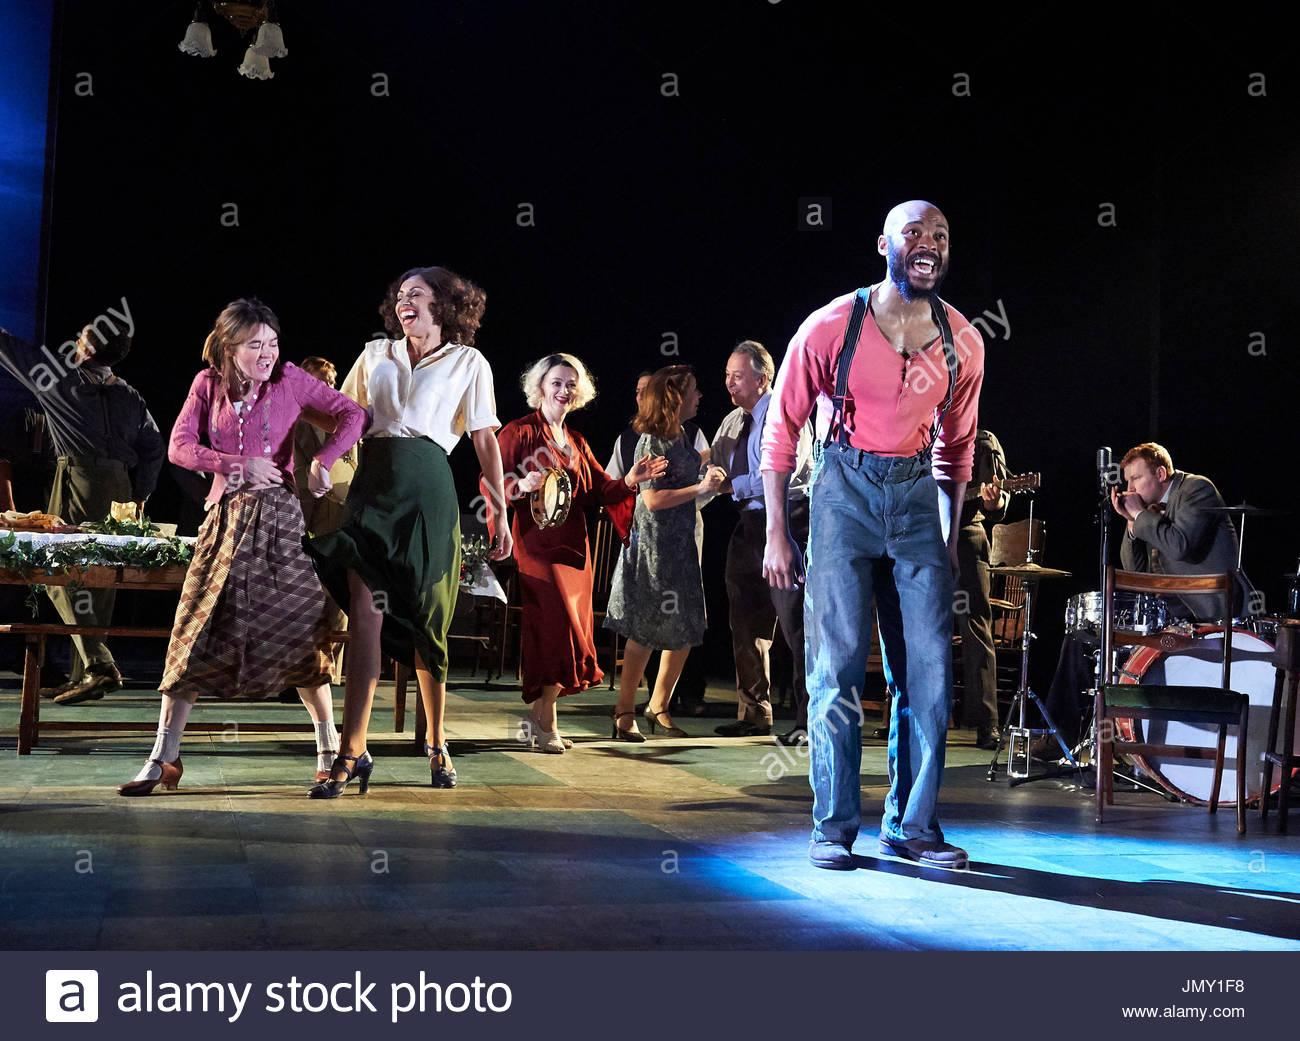 Girl From The North Country,written and directed by Conor McPherson, music and Lyrics by Bob Dylan. With Arinze Kene as Joe Scott. Opens at The Old Vic Theatre on 26/7/17. - Stock Image